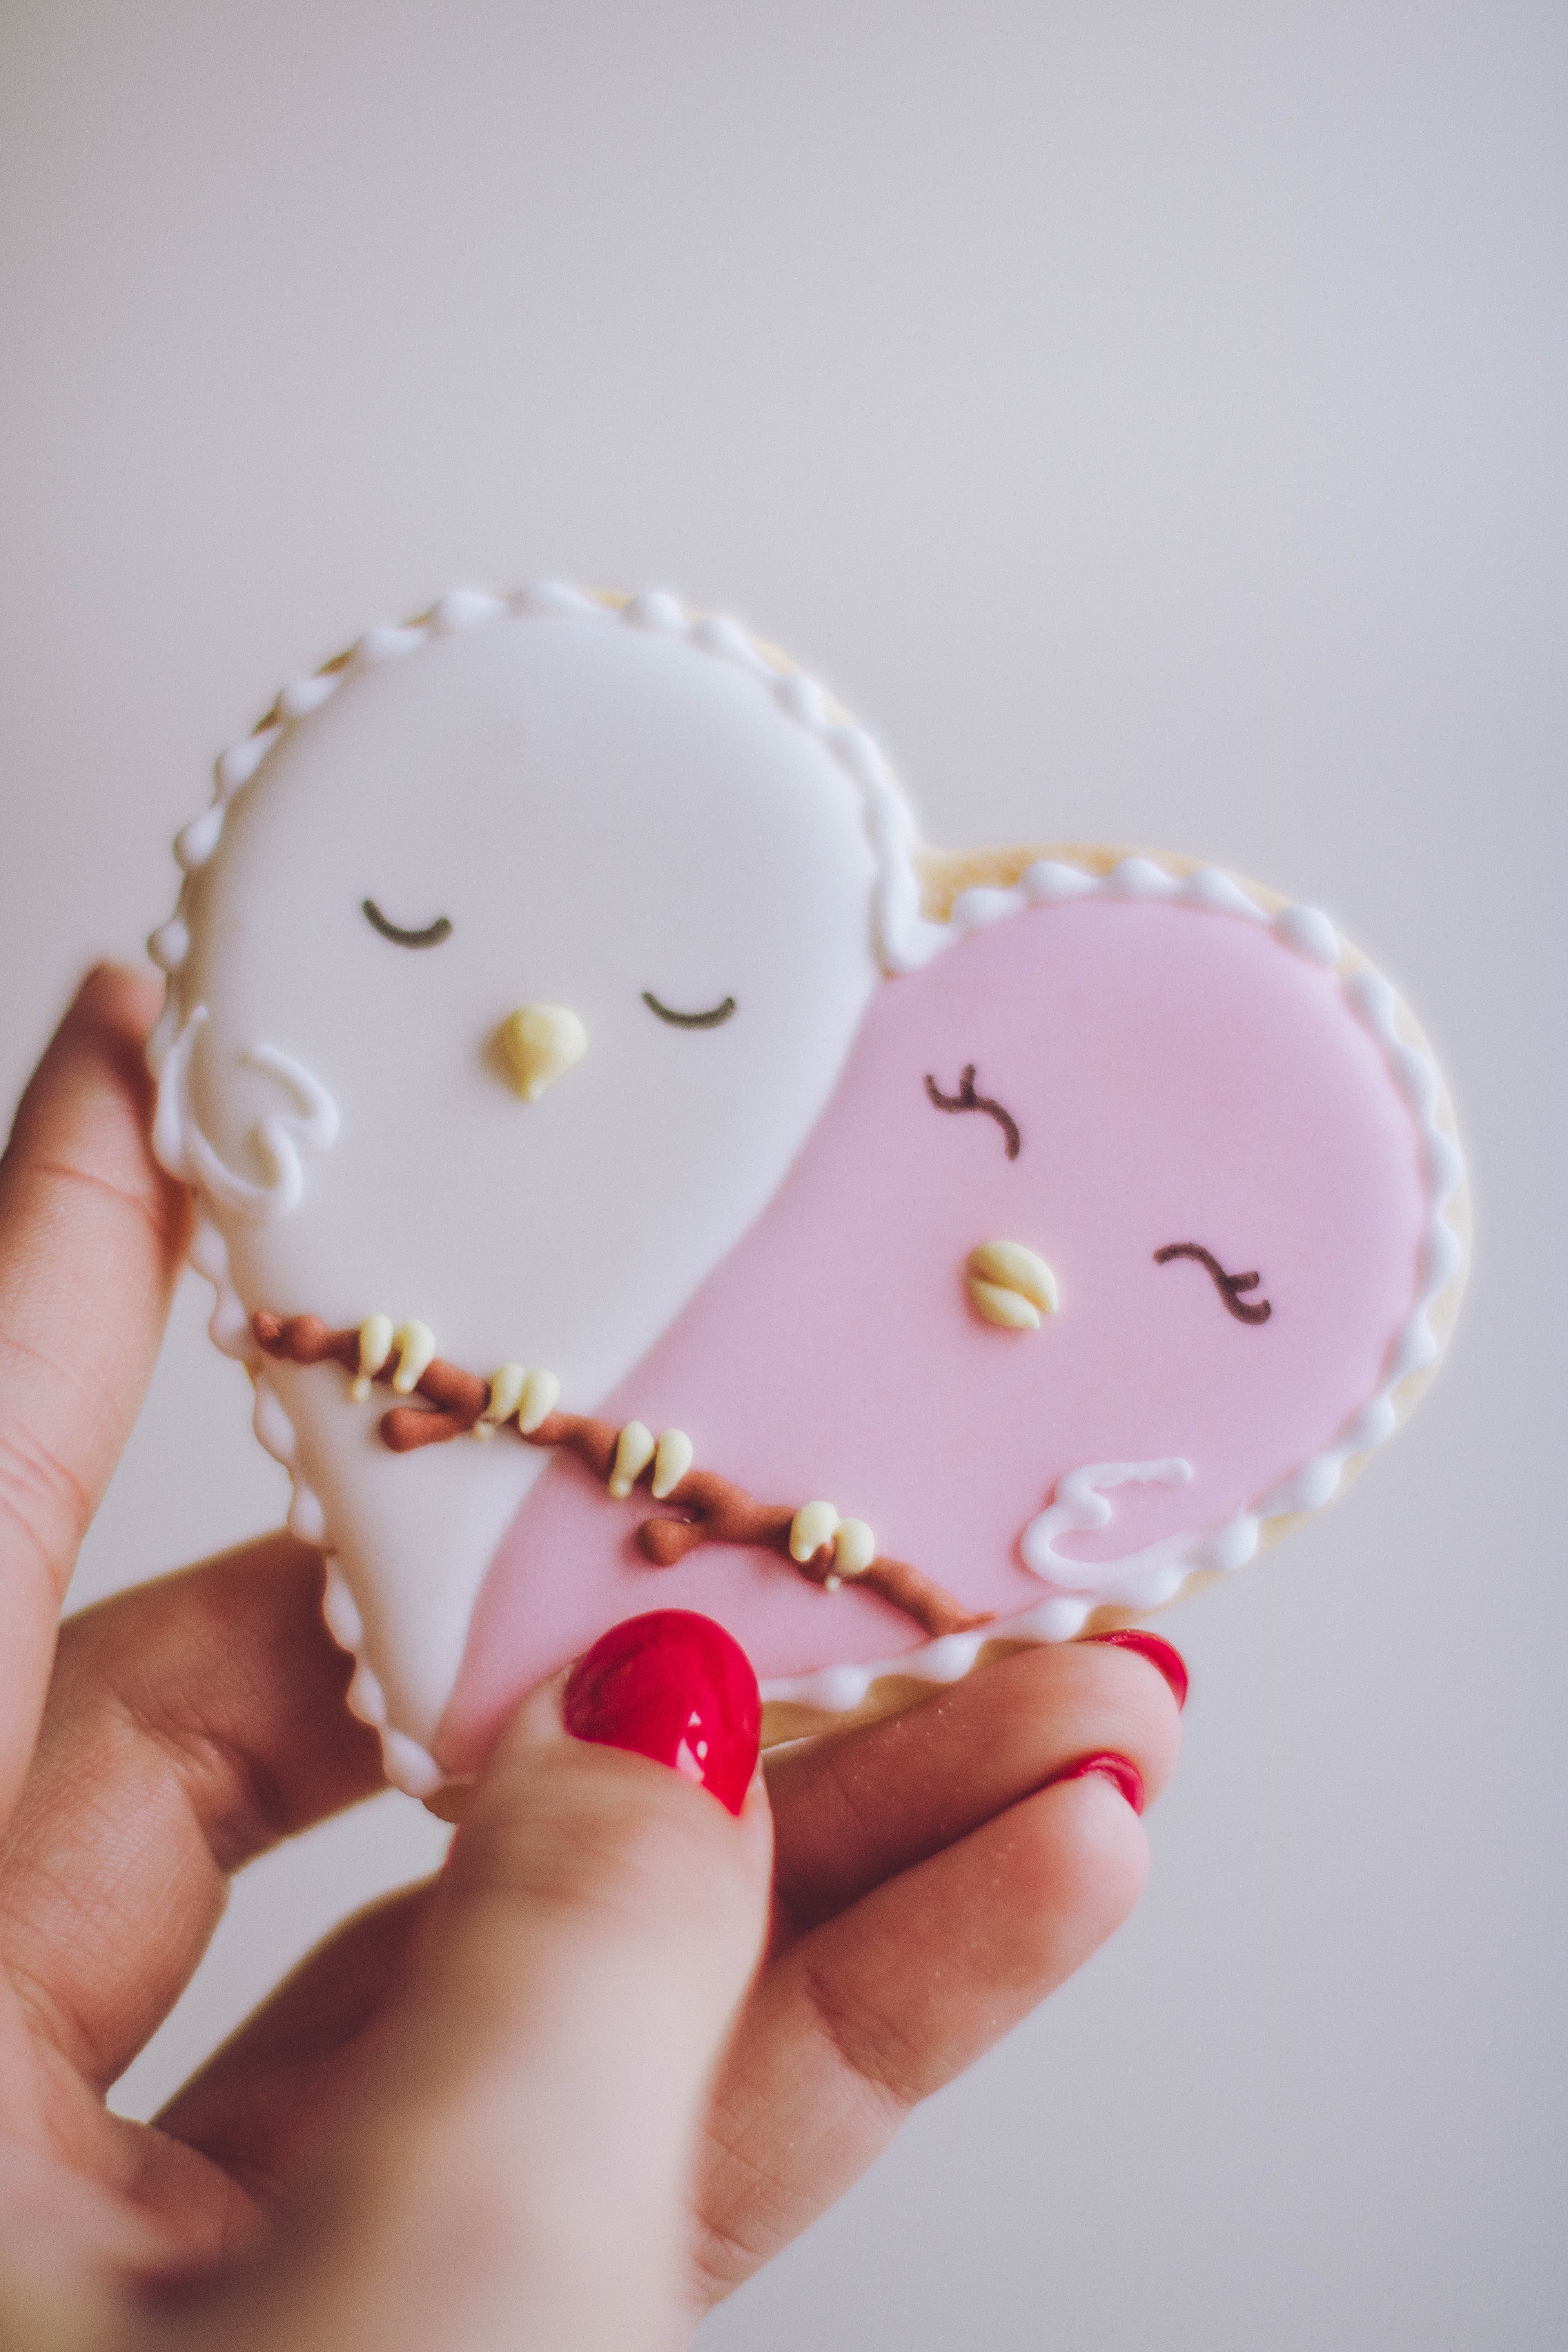 Person holding white and pink birds ornament photo